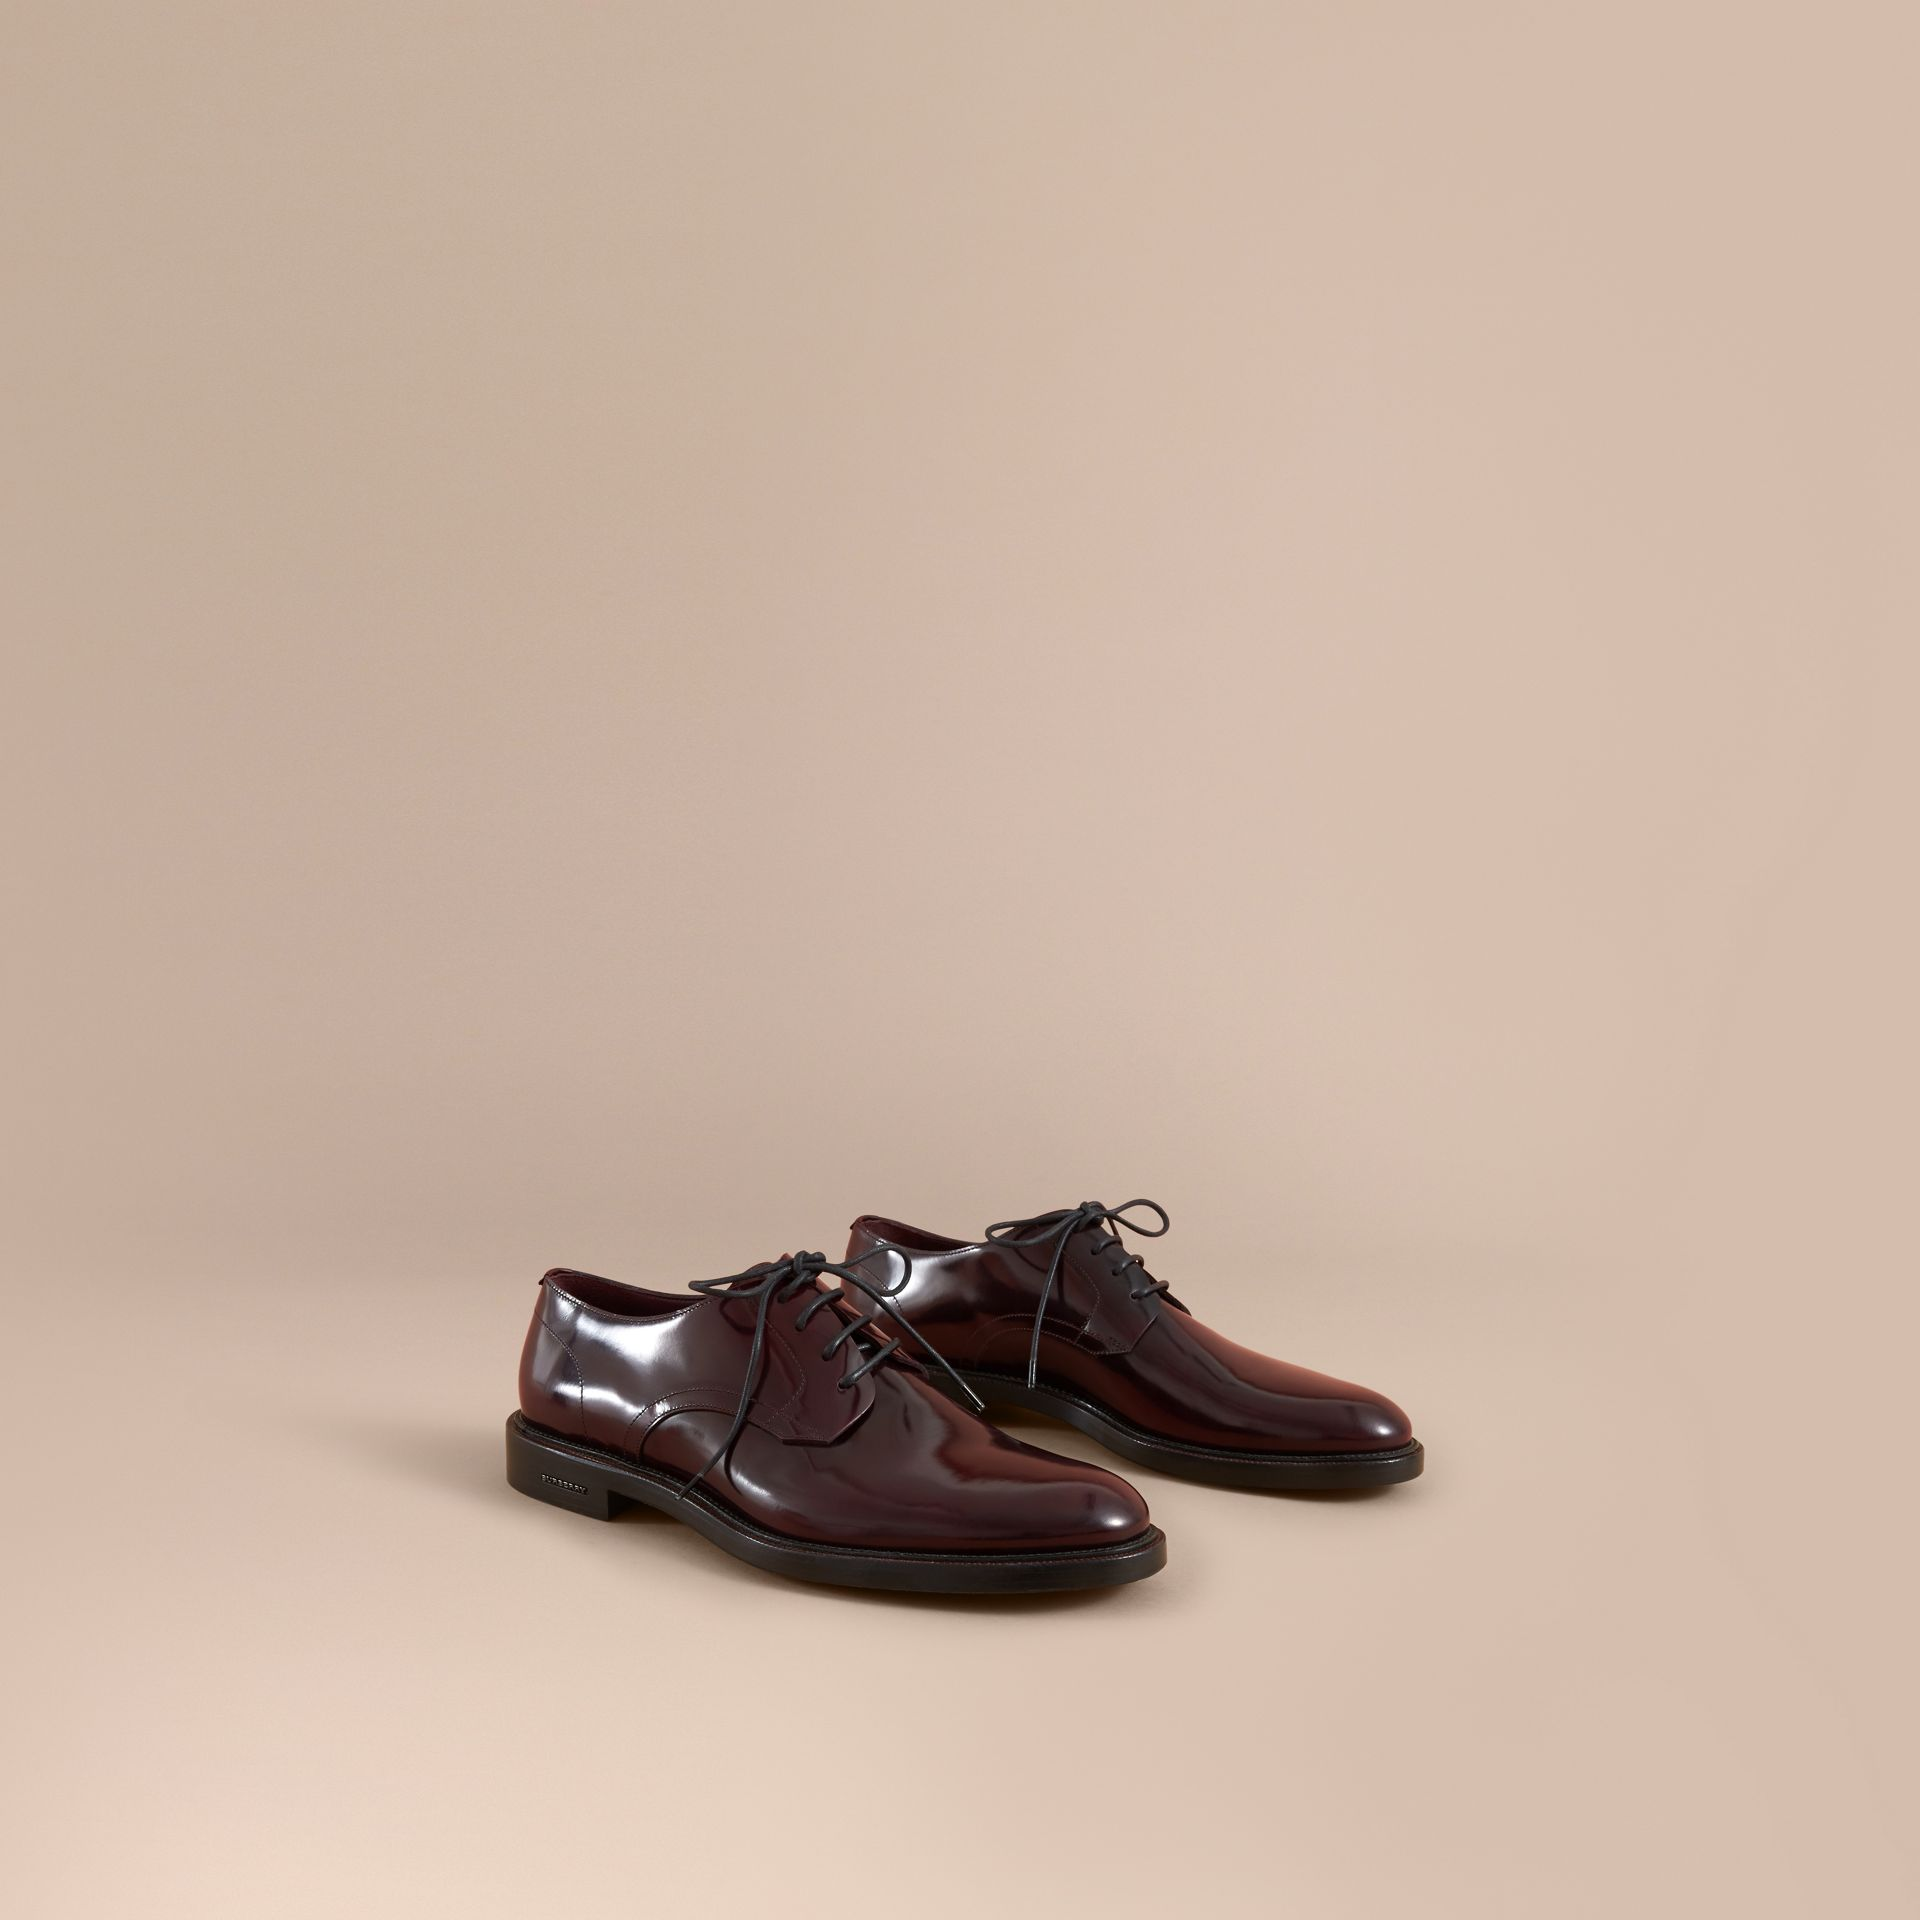 Burberry Rust Red Polished Leather Derby Shoes